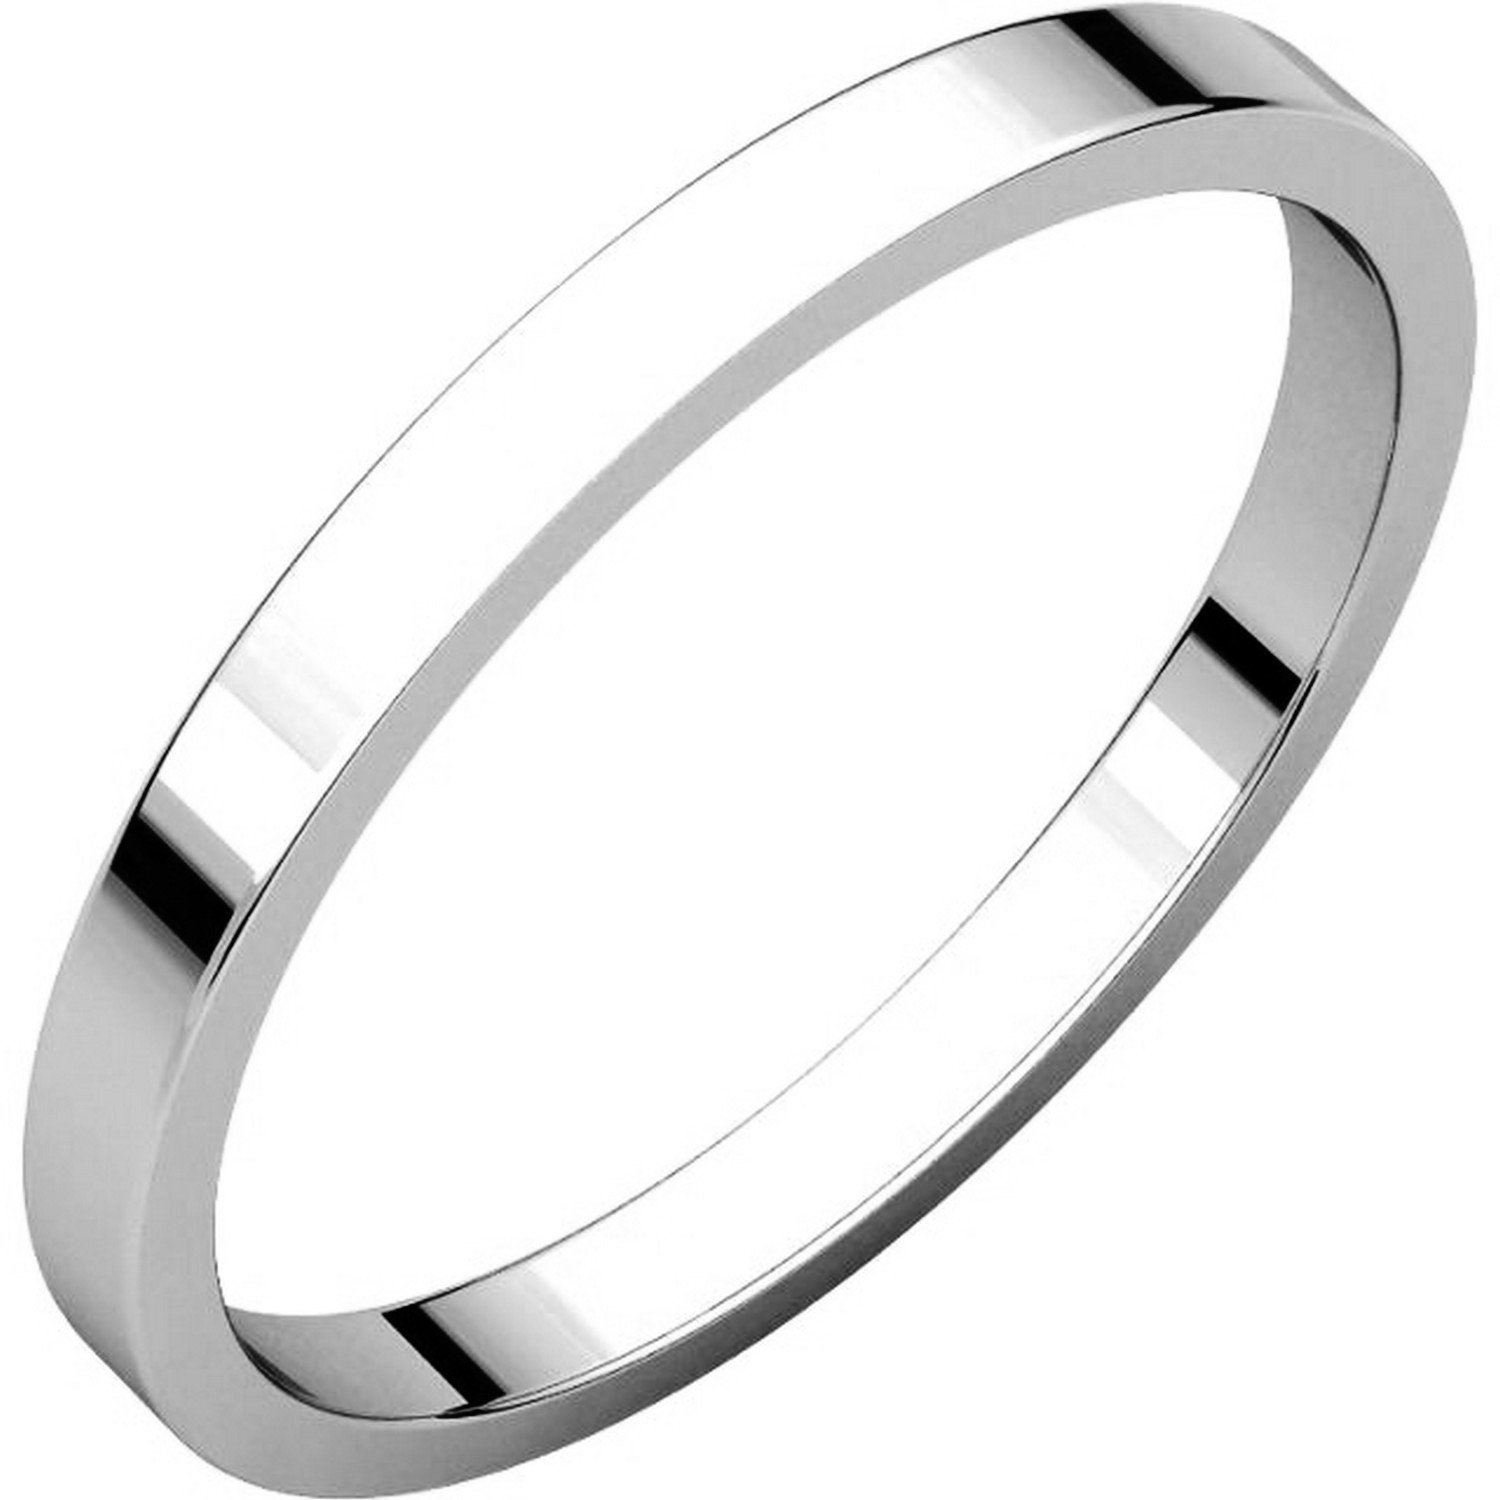 Men's and Women's 14k White Gold, 2mm Wide, Flat, Plain Wedding Band - Size 12.5